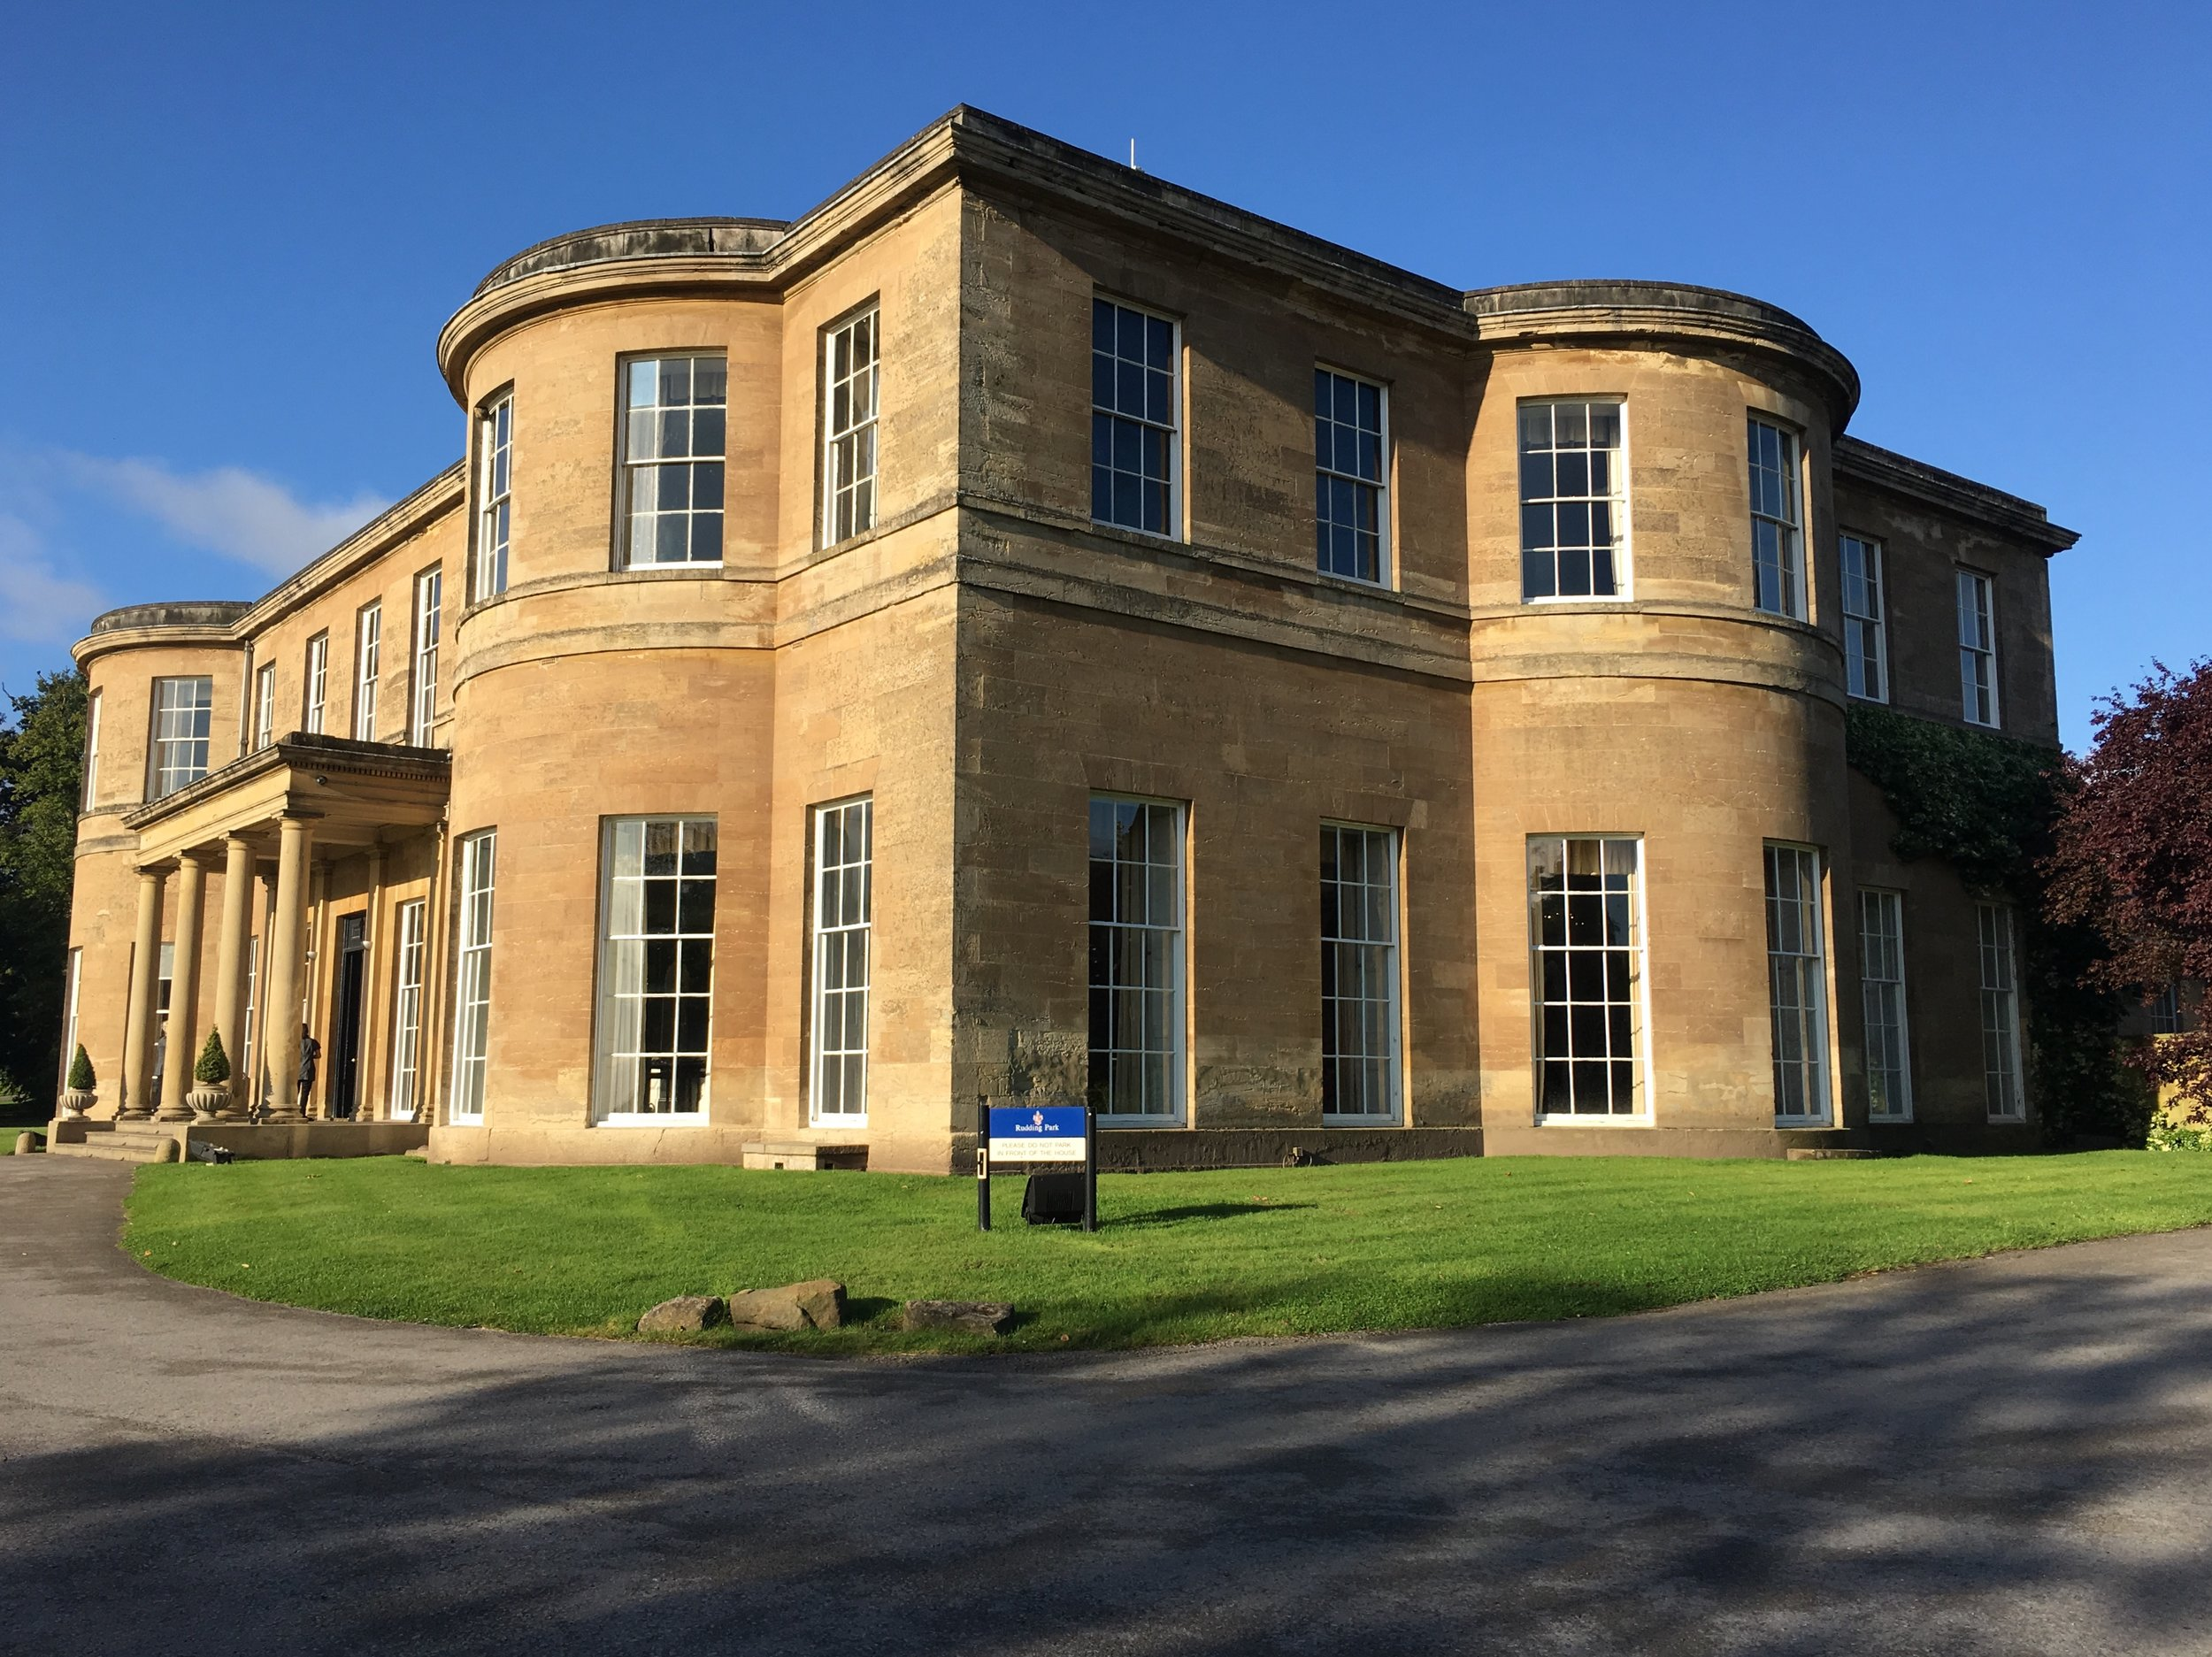 Magnificent: the old-gold stone of the old house at Rudding Park(the hotel and spa are at the back)